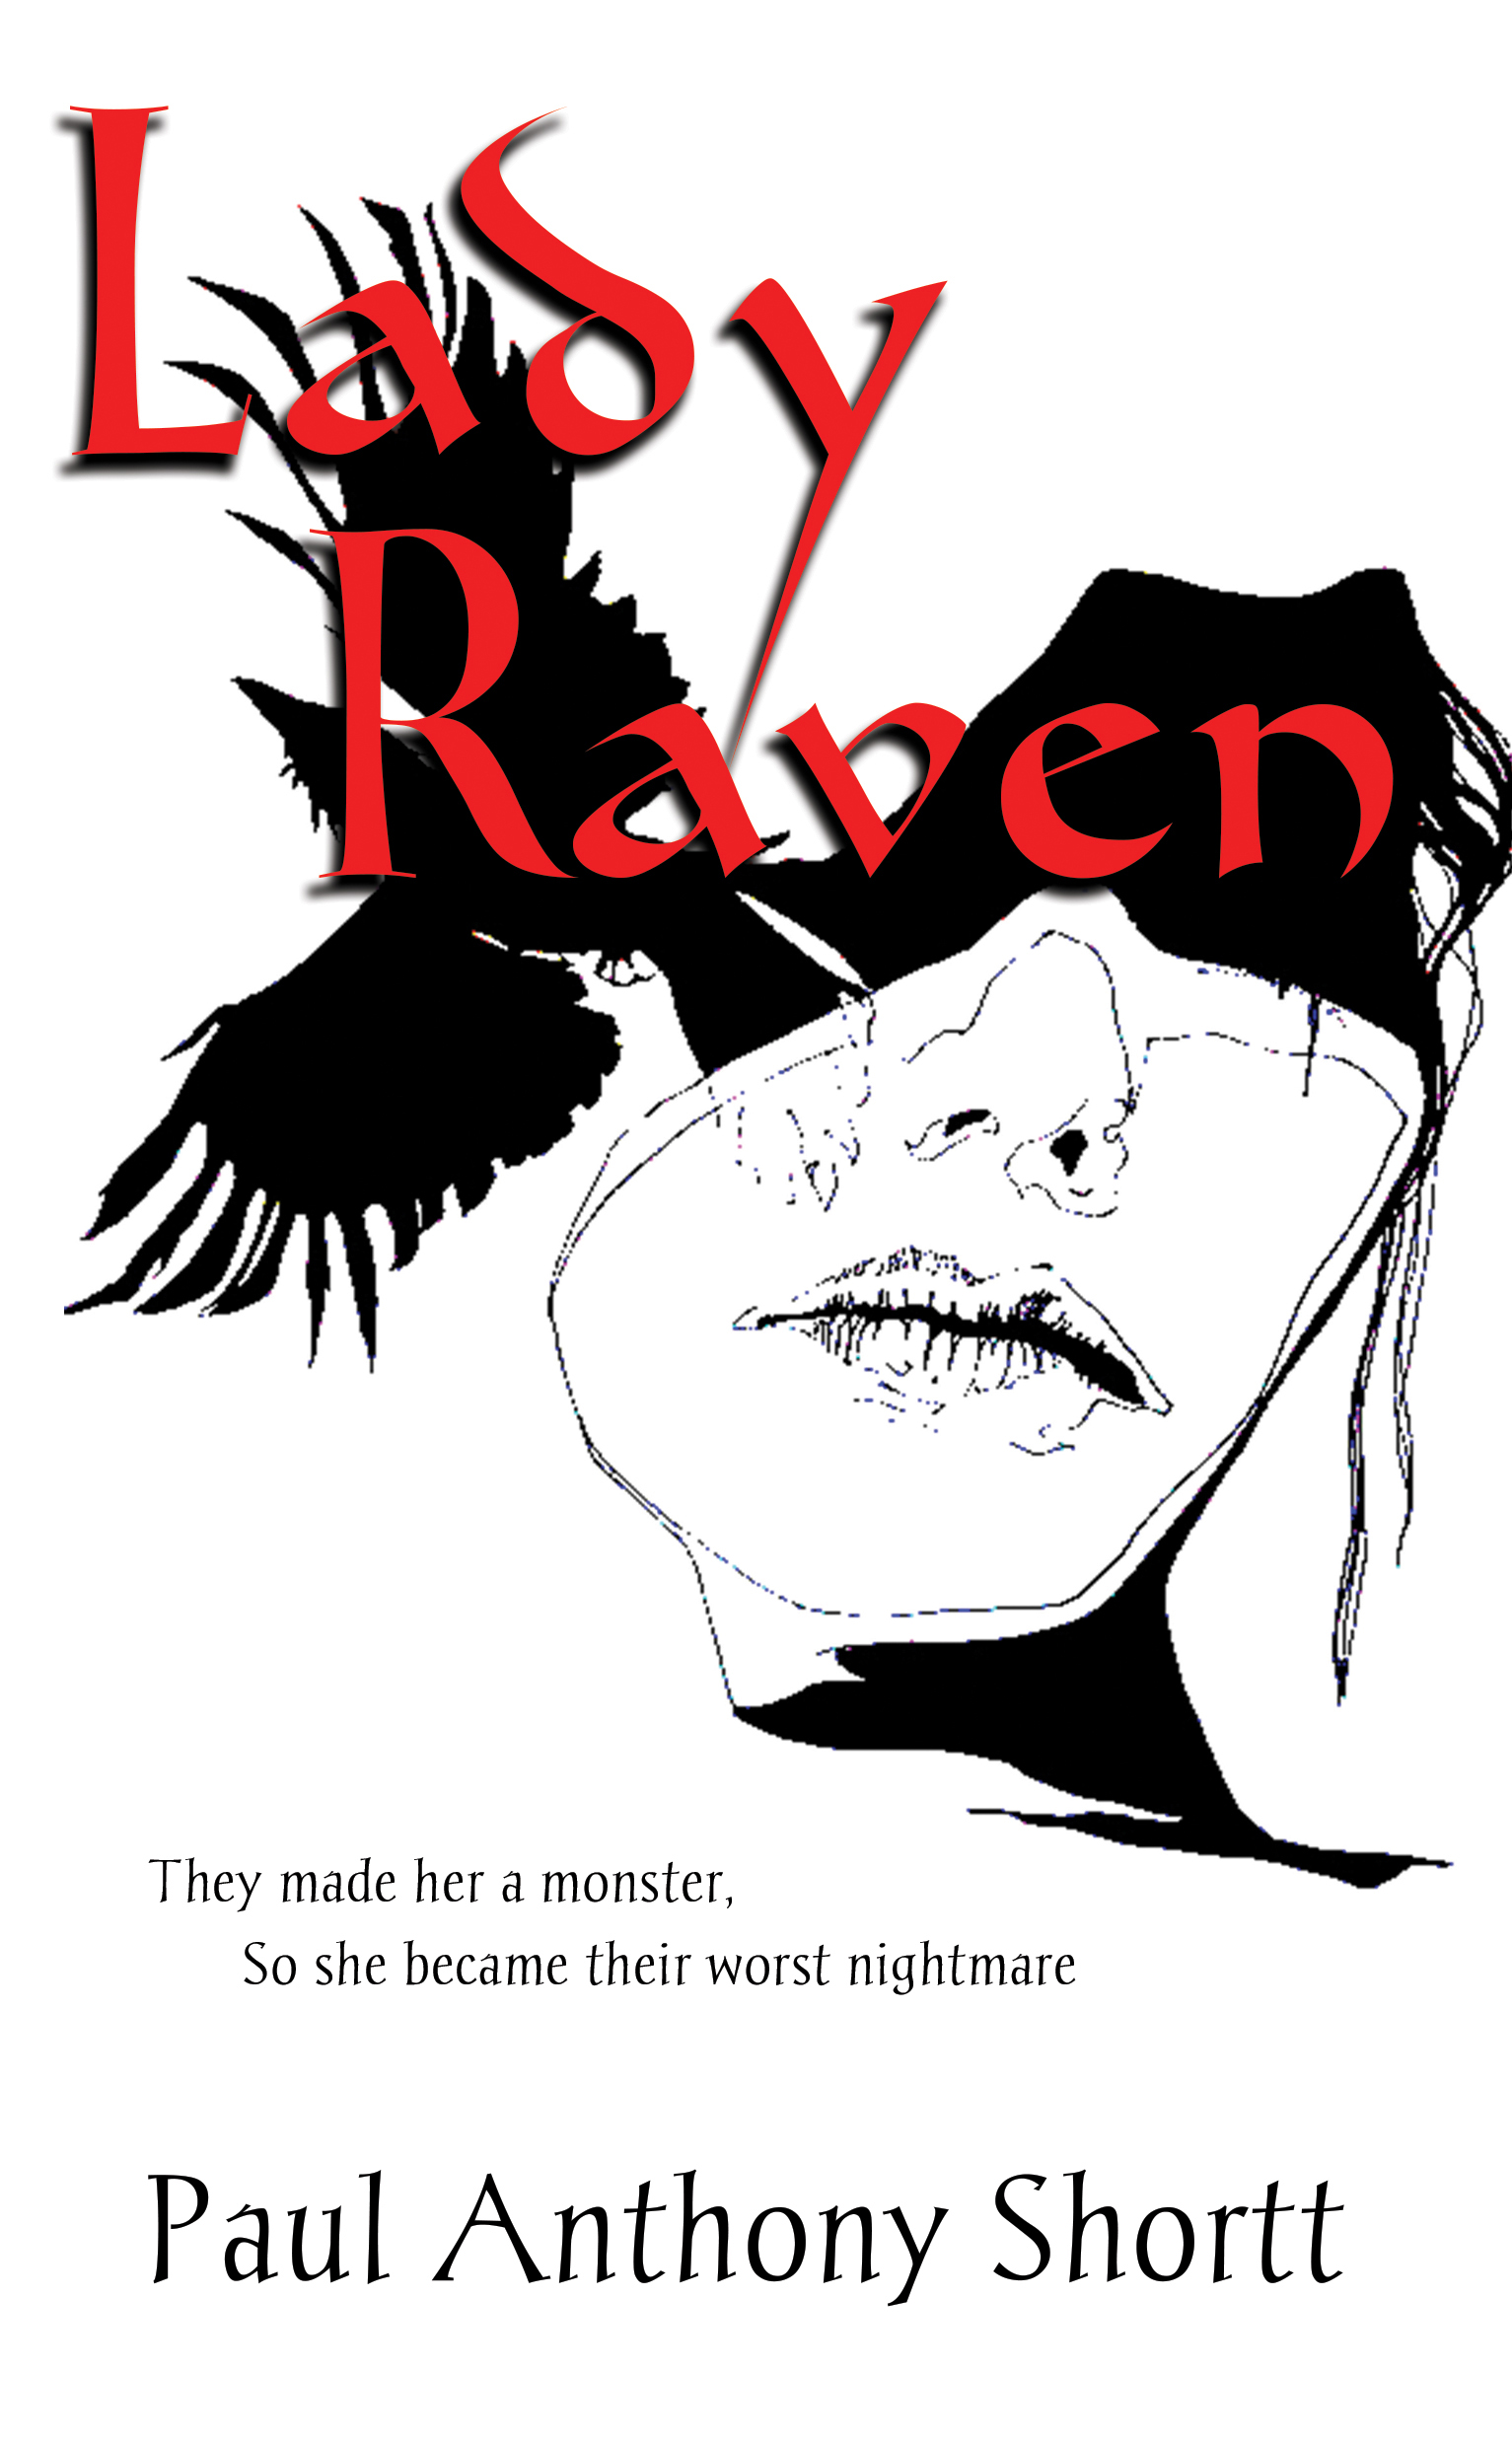 "Abstract image of a young woman's face, the top half obscured by shadow. A raven flies behind her. The title ""Lady Raven"" is in red letters, with the tagline ""They made her a monster. So she became their worst nightmare."""